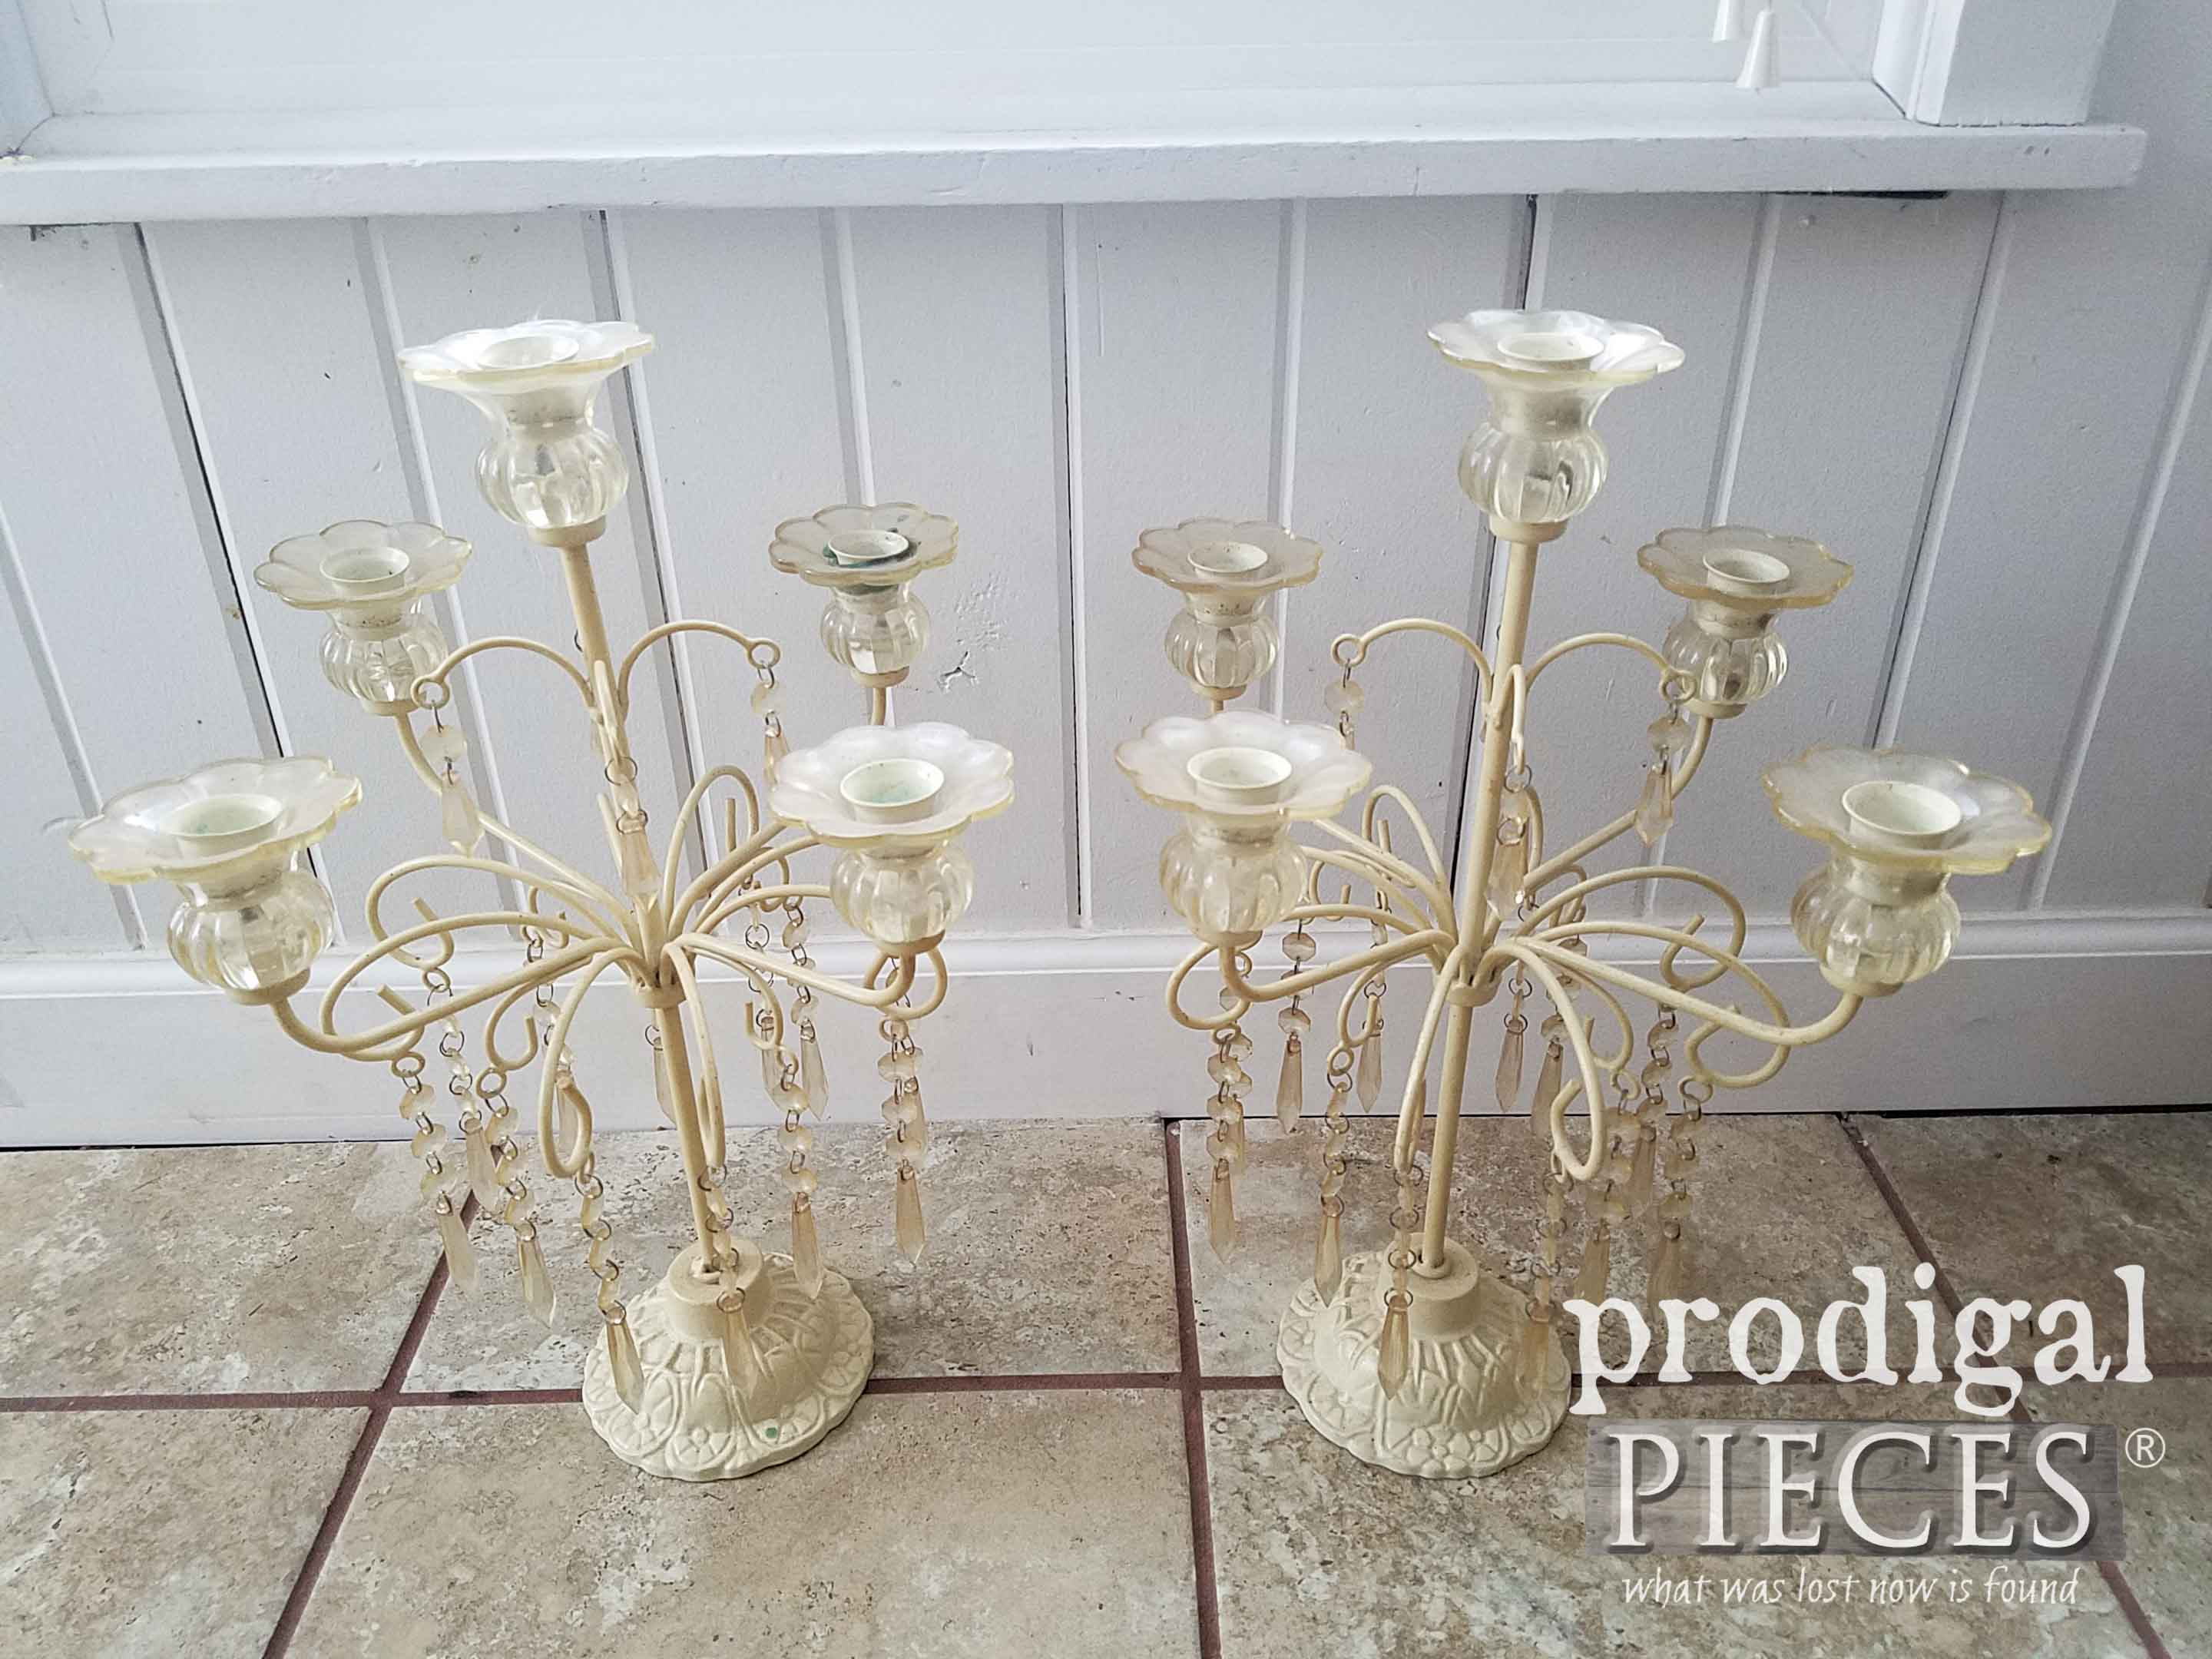 Set of Thrifted Candelabras Before Makeover by Prodigal Pieces | prodigalpieces.com